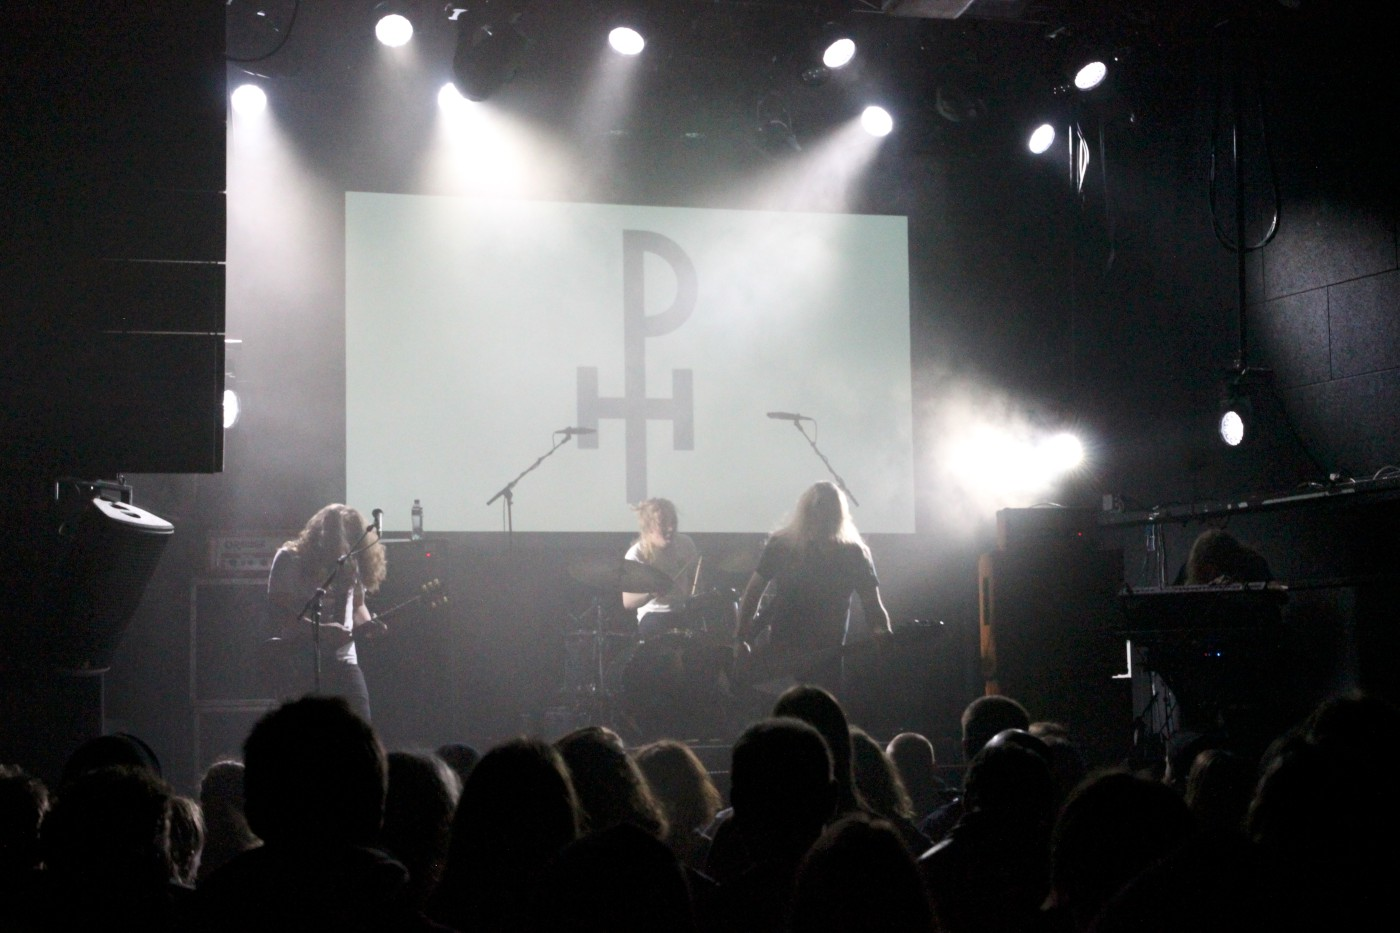 ph 1 (Photo by JJ Koczan)